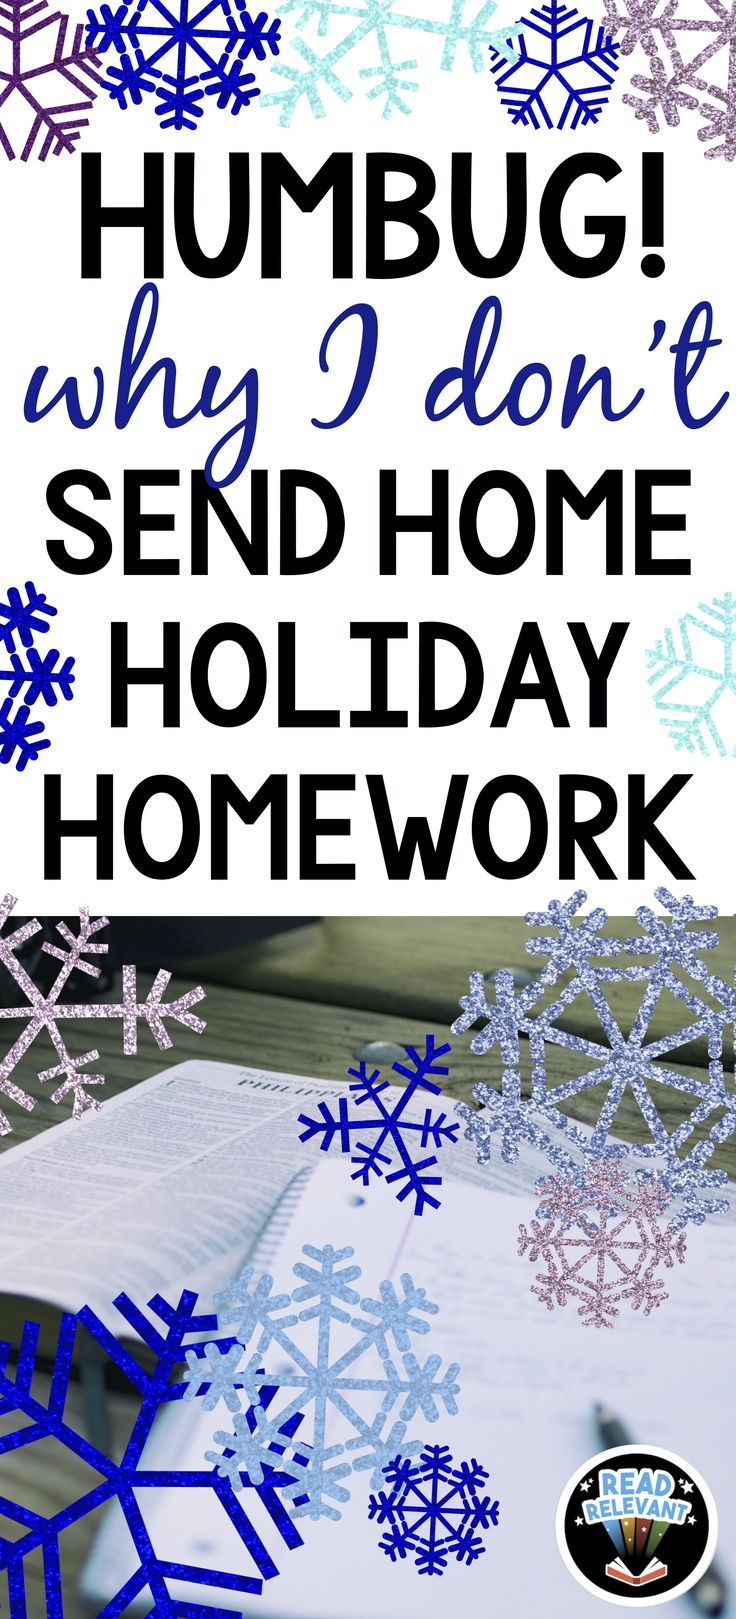 Holiday homework and holiday packets are popular at this time of year... but here's why I gave them up.